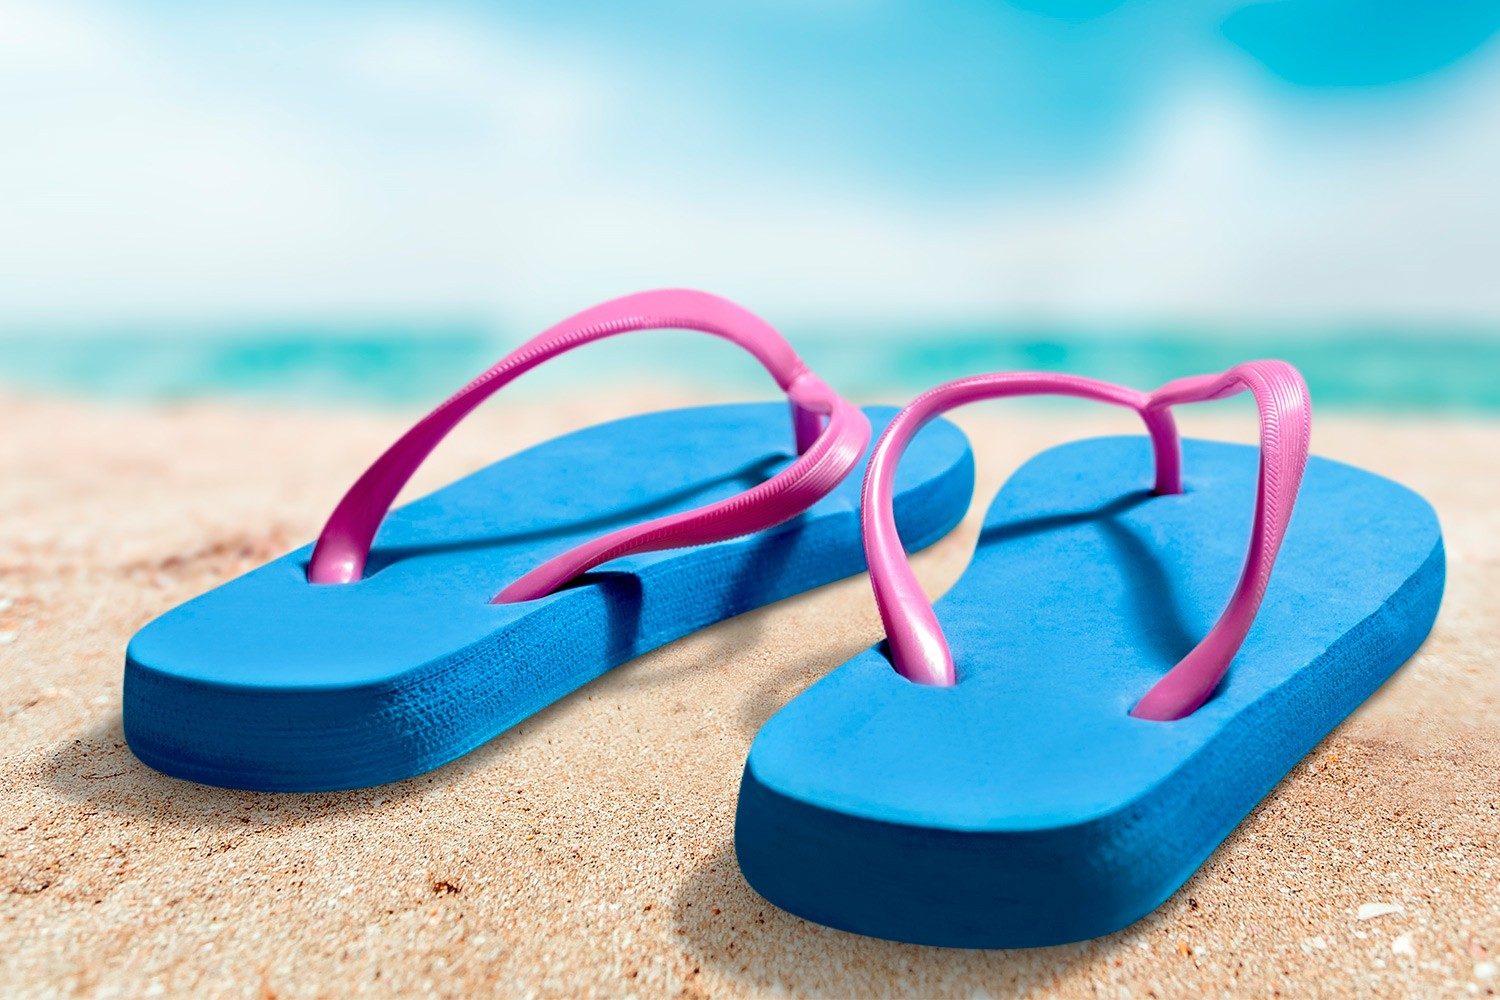 105a9266bce1ae Flip-flop hazards - Healthy Living Made Simple